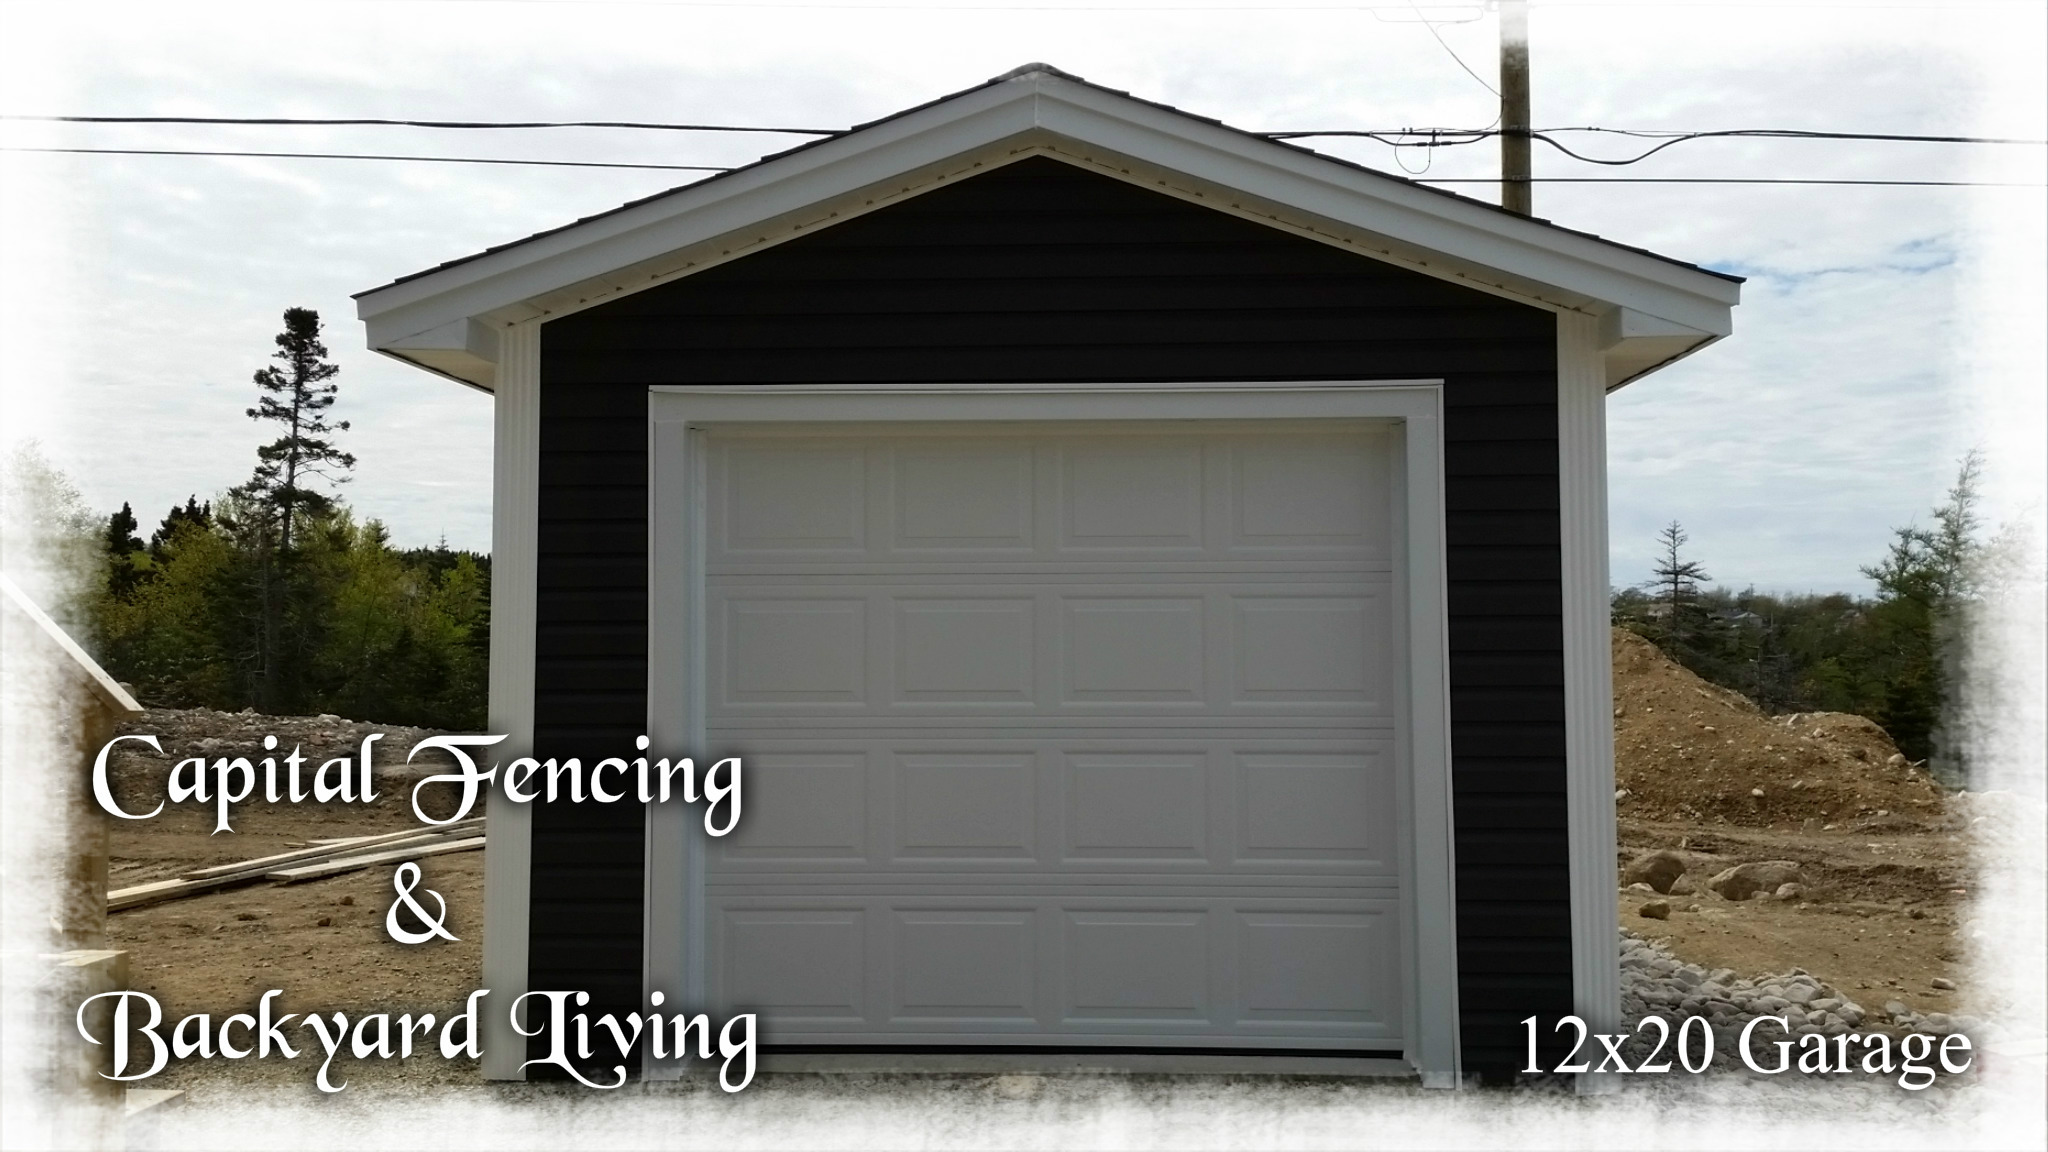 Garages Capital Fencing And Backyard Living